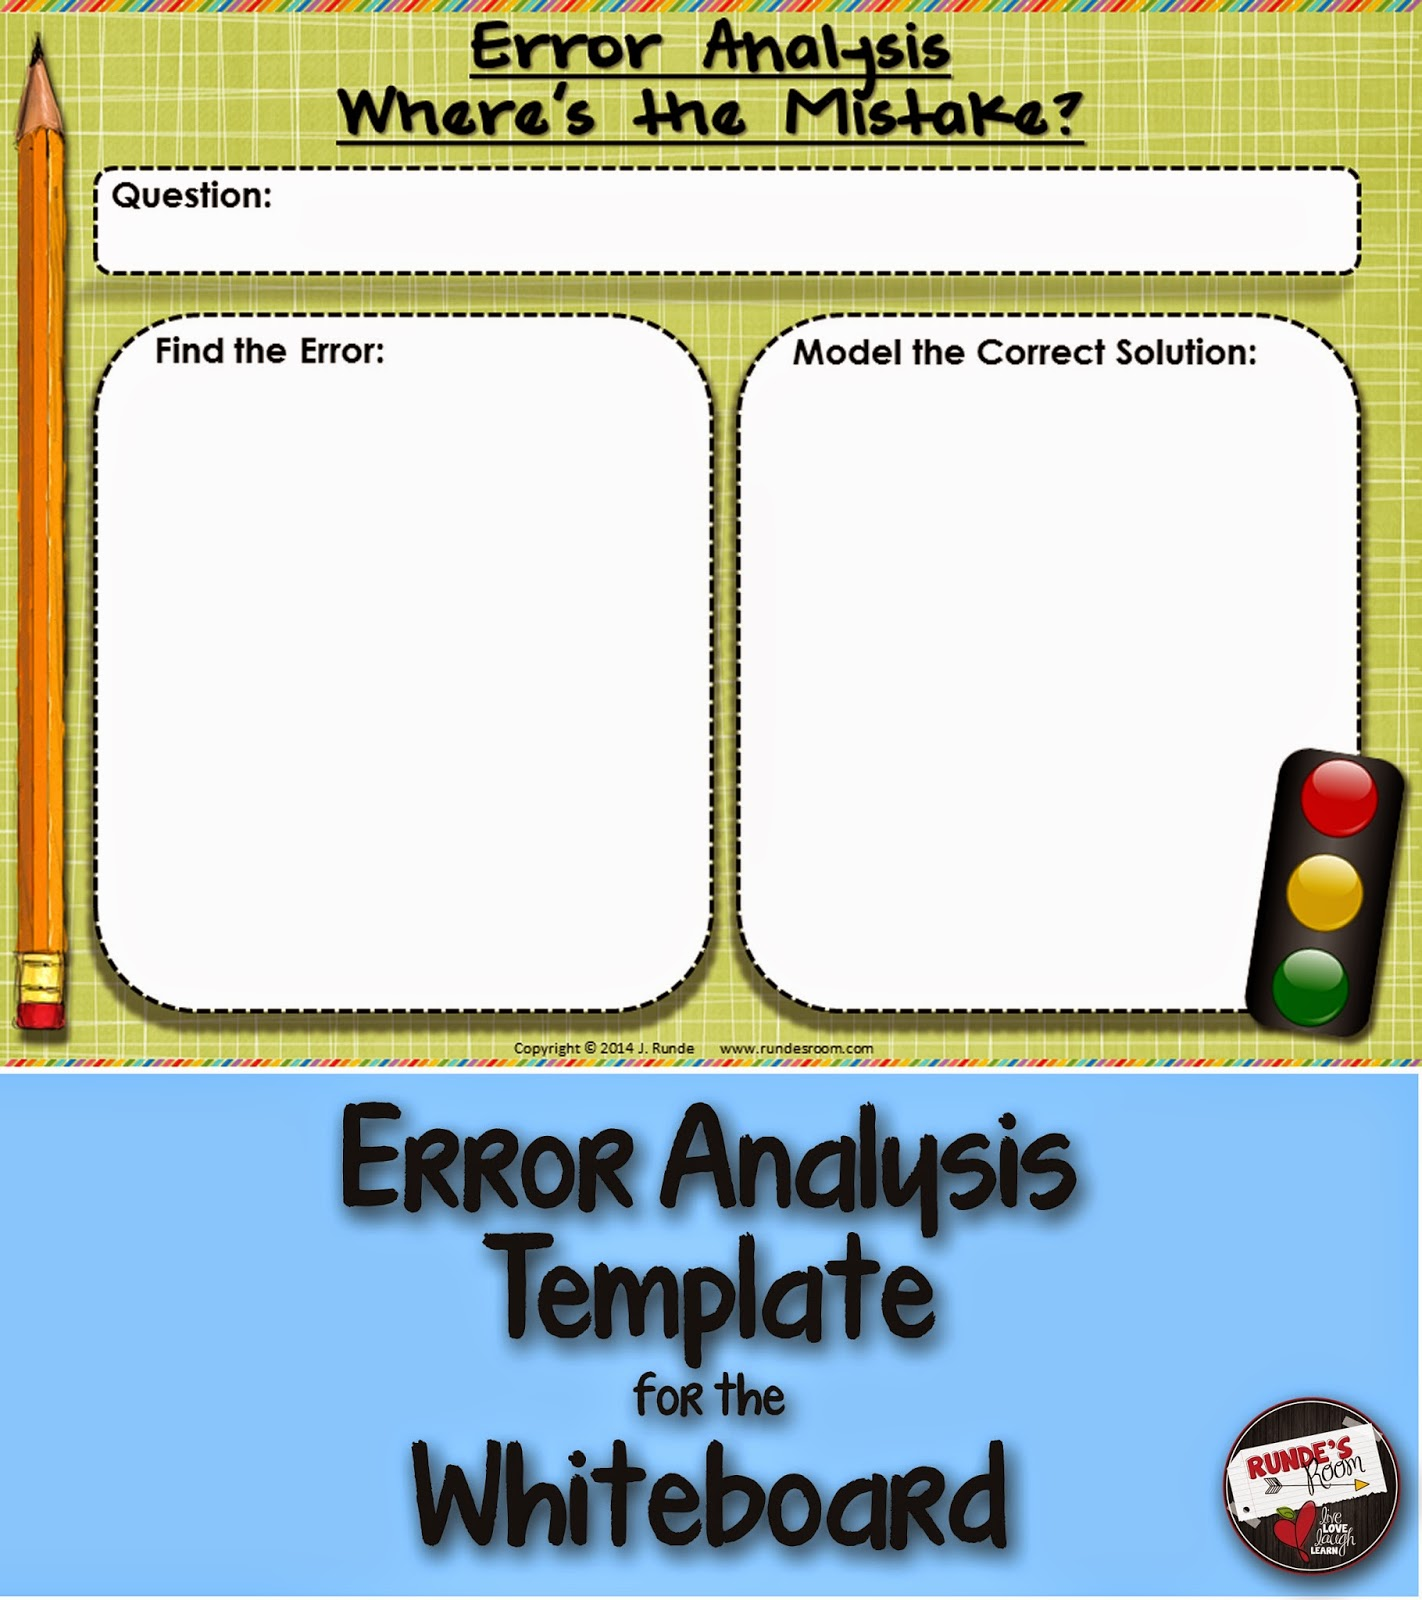 Error Analysis Template